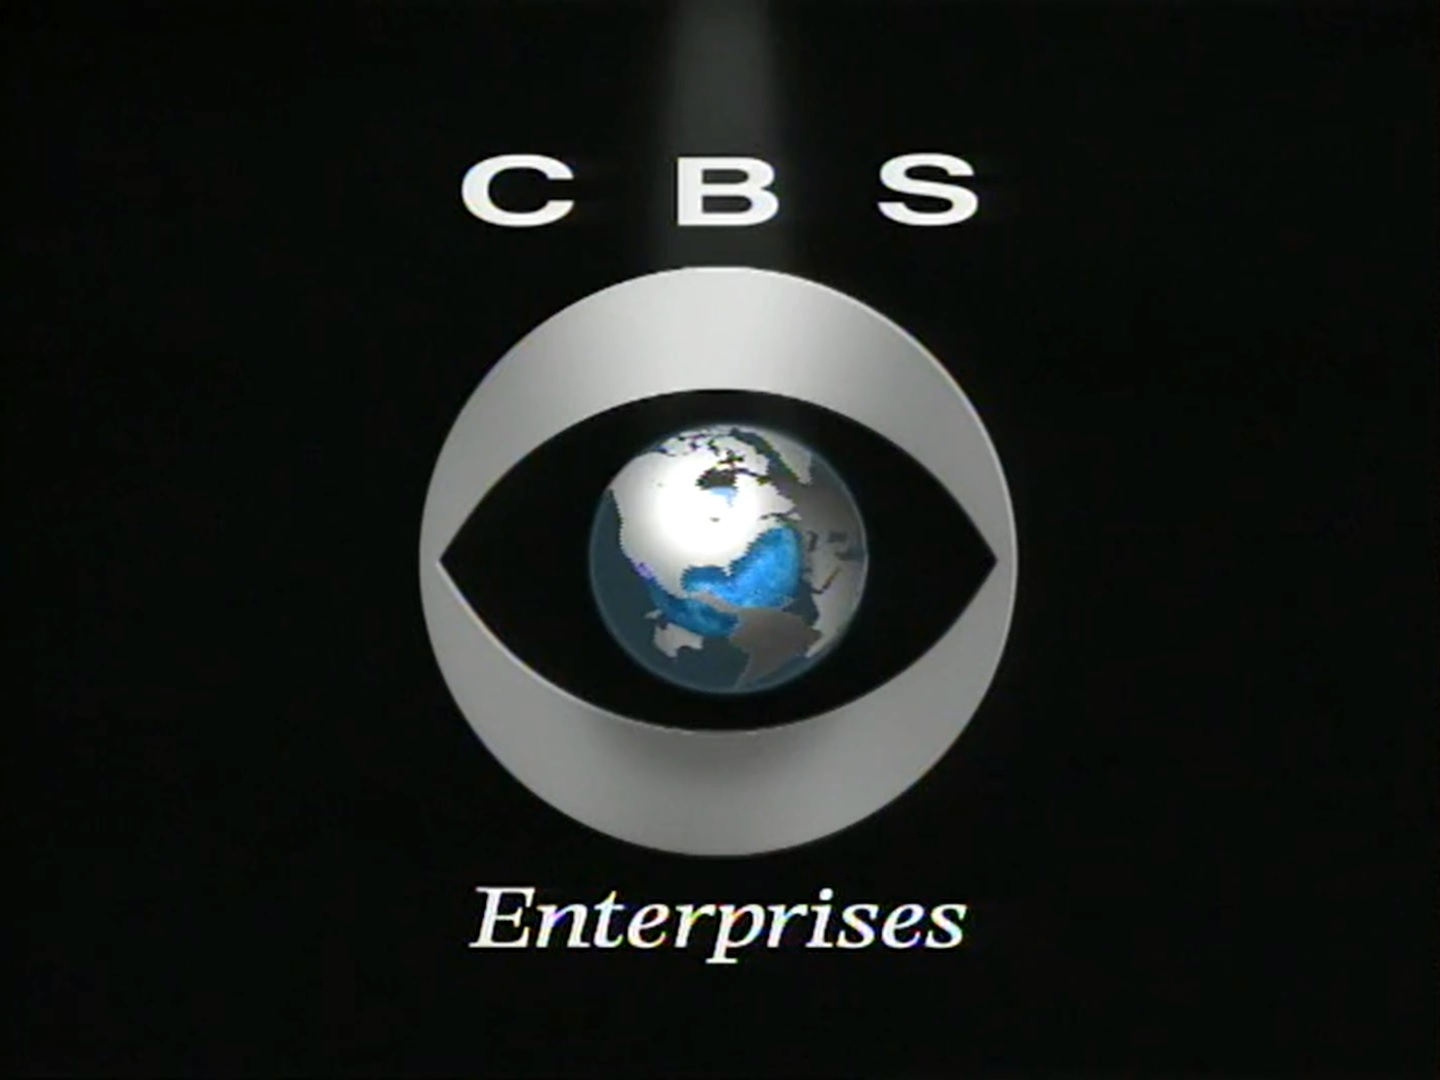 CBS Enterprises (production company)